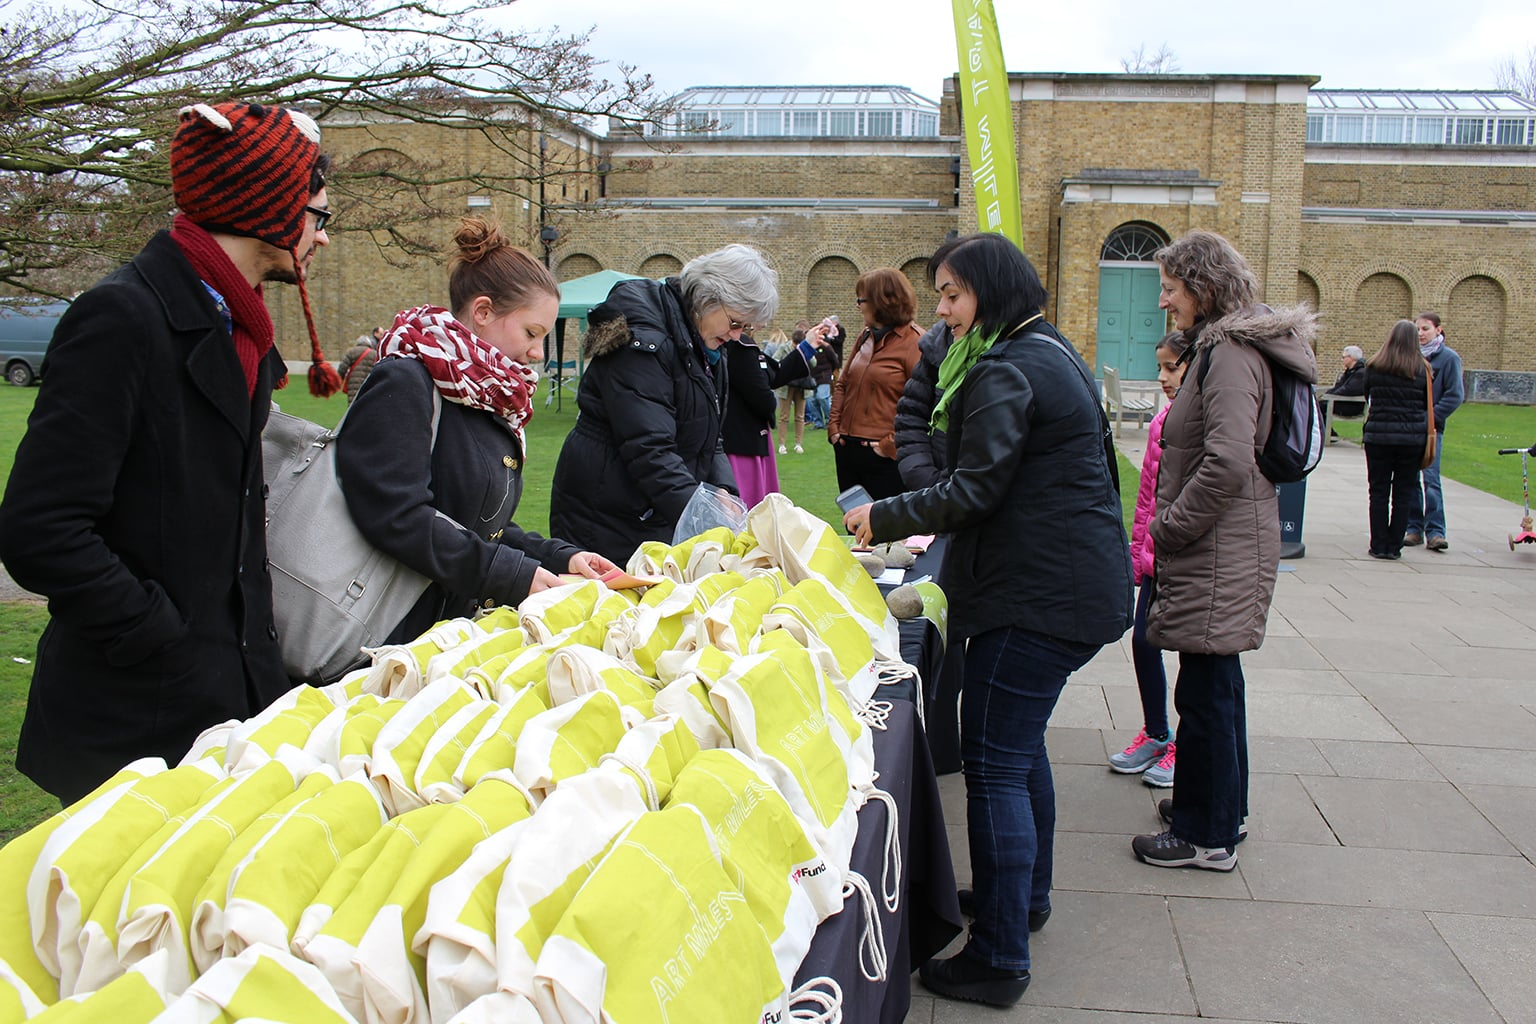 Art Miles bags at Dulwich Picture Gallery -